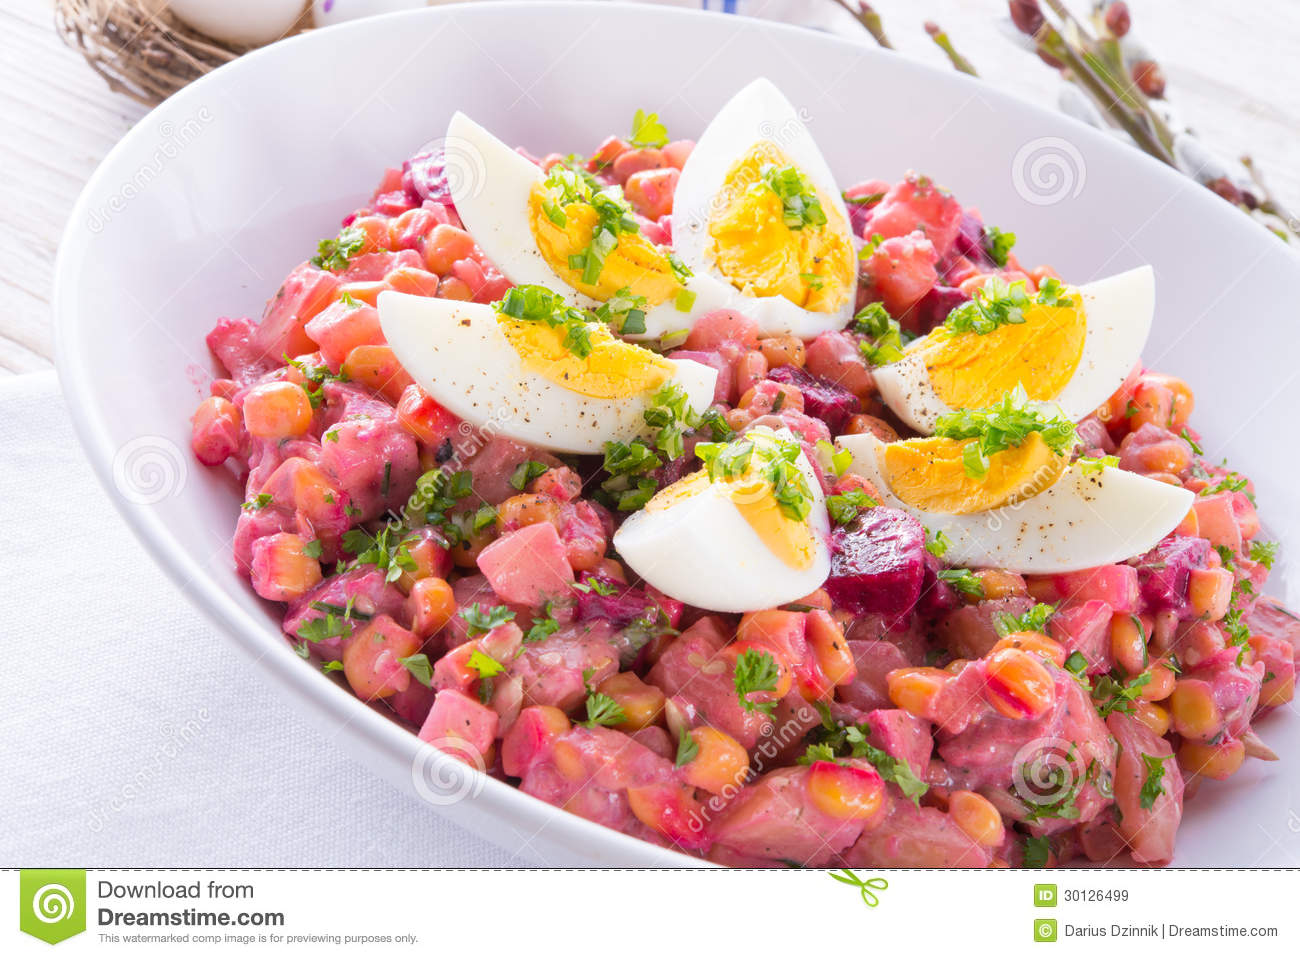 Red Beet Salad With Egg Royalty Free Stock Images - Image: 30126499